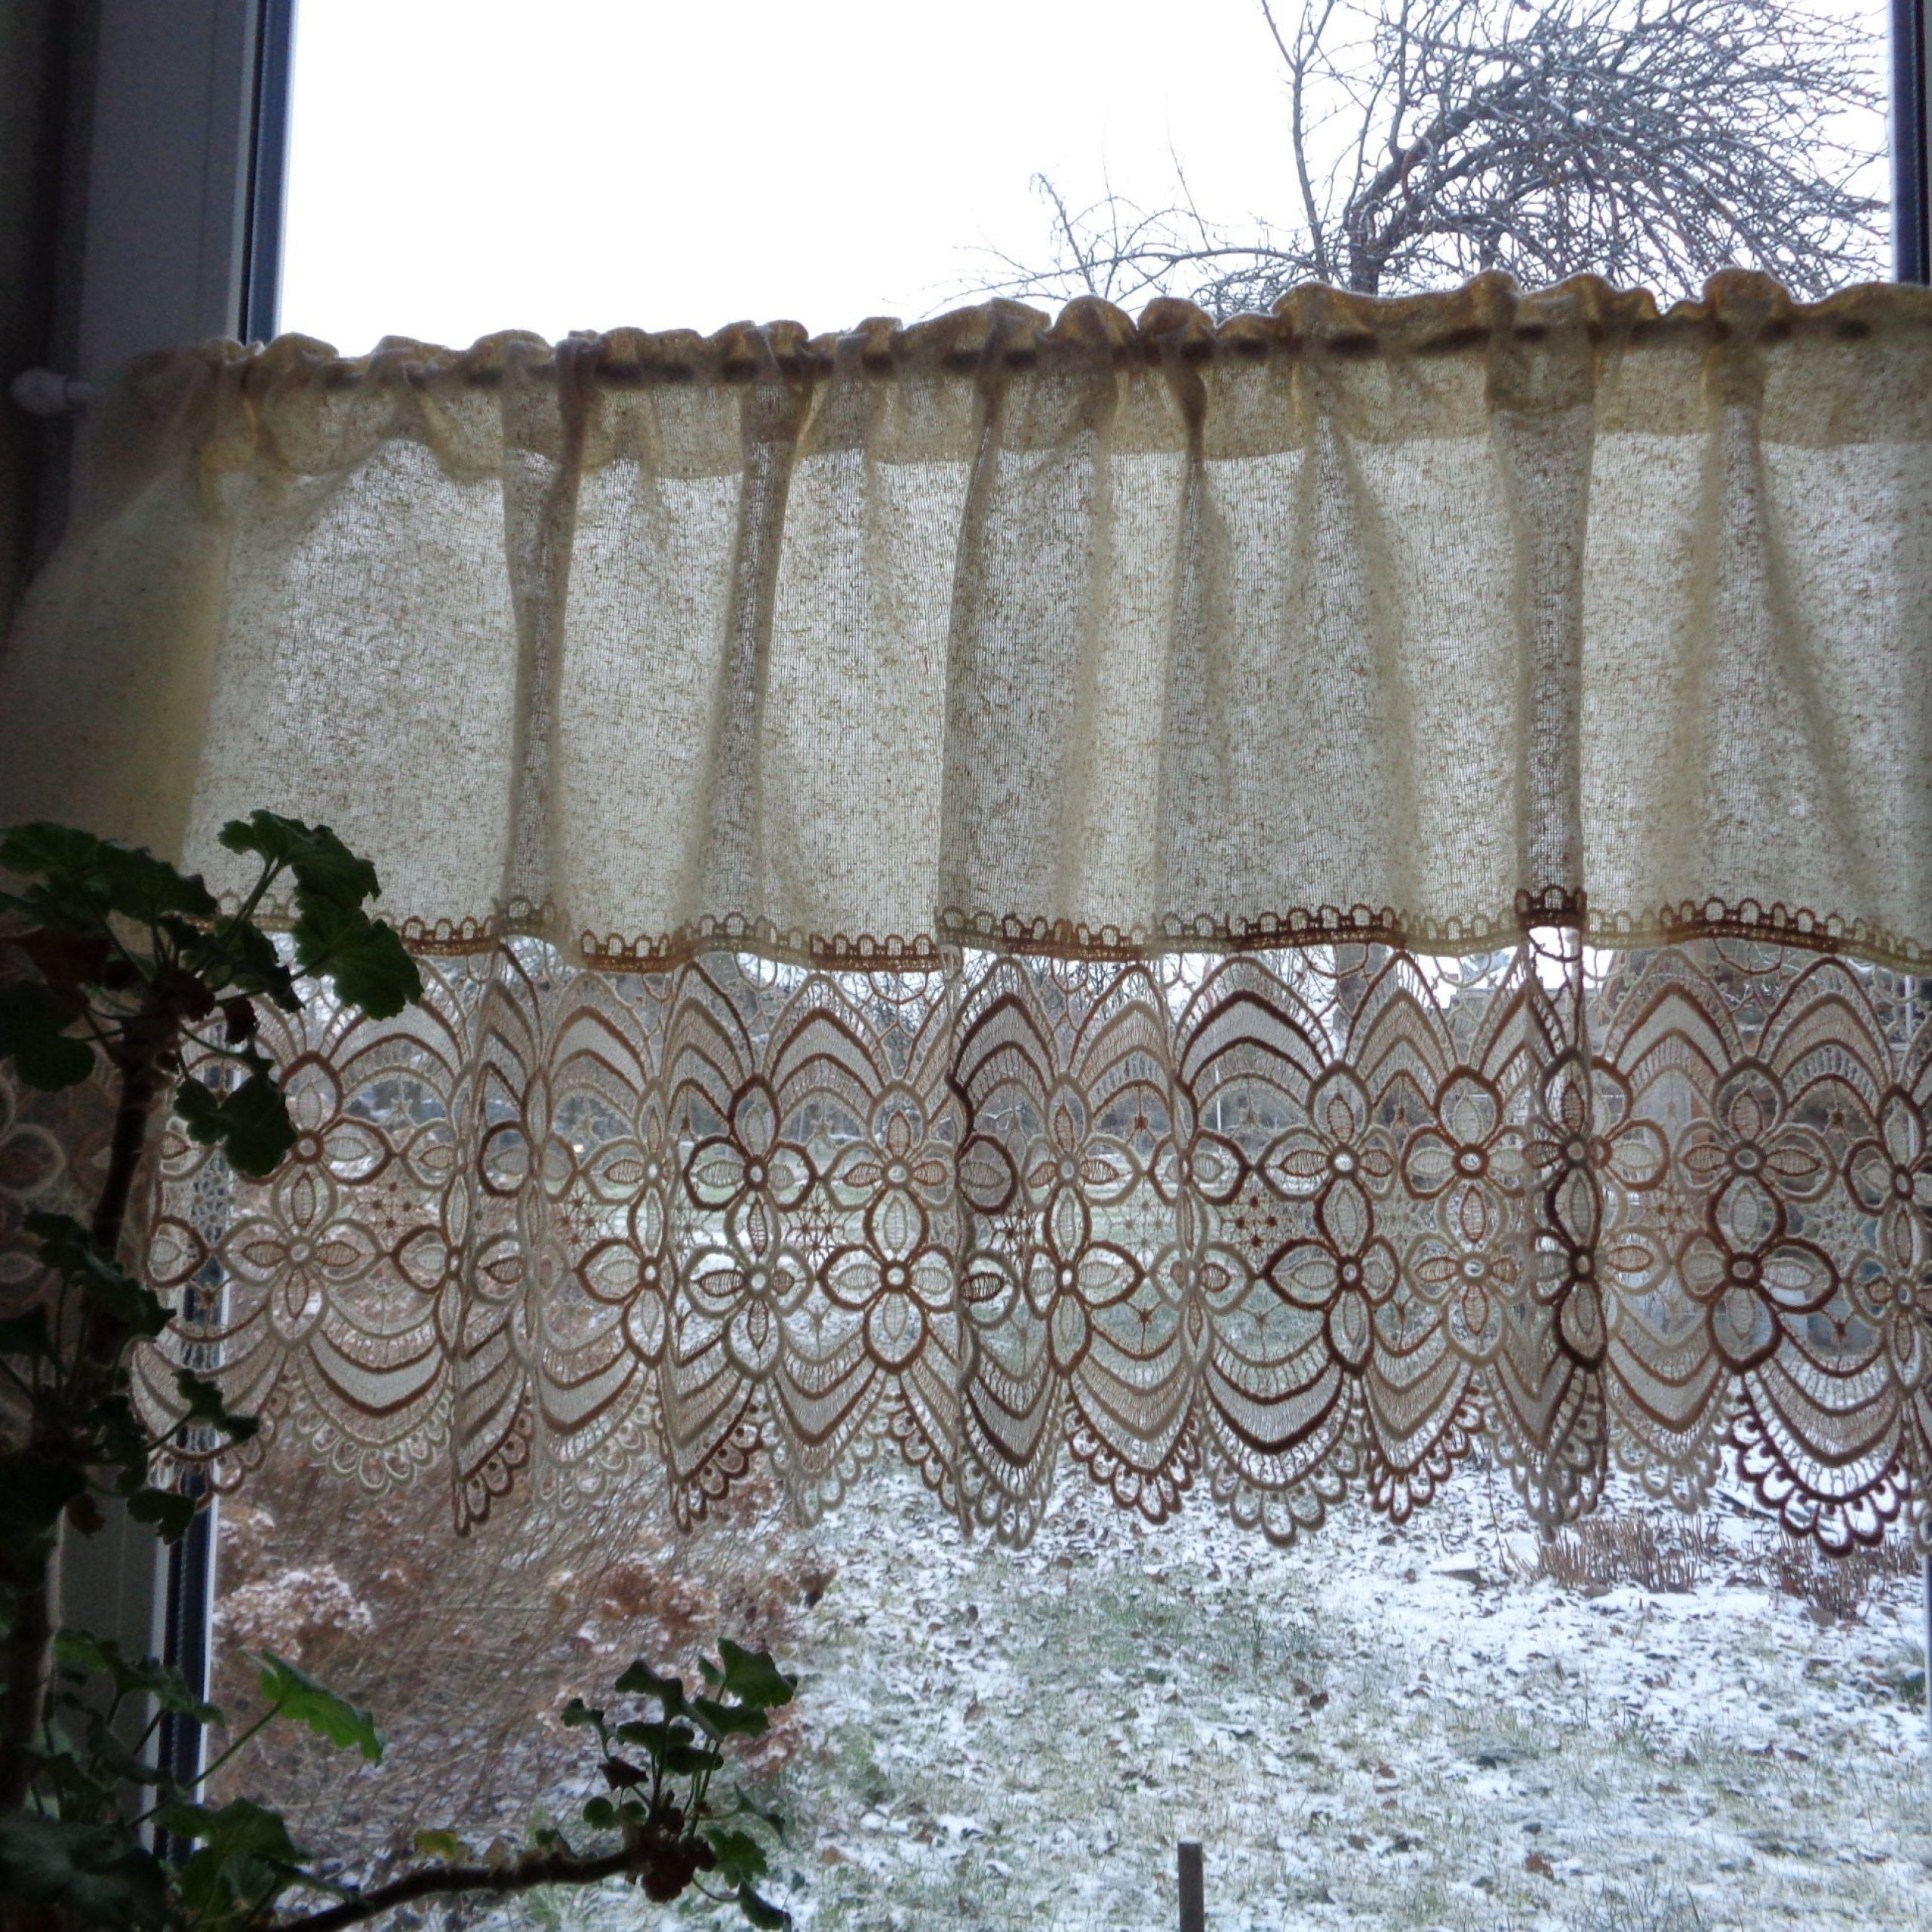 """Vintage Fabric & Lace Curtain; Beige Privacy Curtain With Venice Lace H22""""x W56"""" Rustic Curtain, Kitchen Curtain; Cottage Chic Curtain Intended For Ivory Knit Lace Bird Motif Window Curtain (View 19 of 20)"""